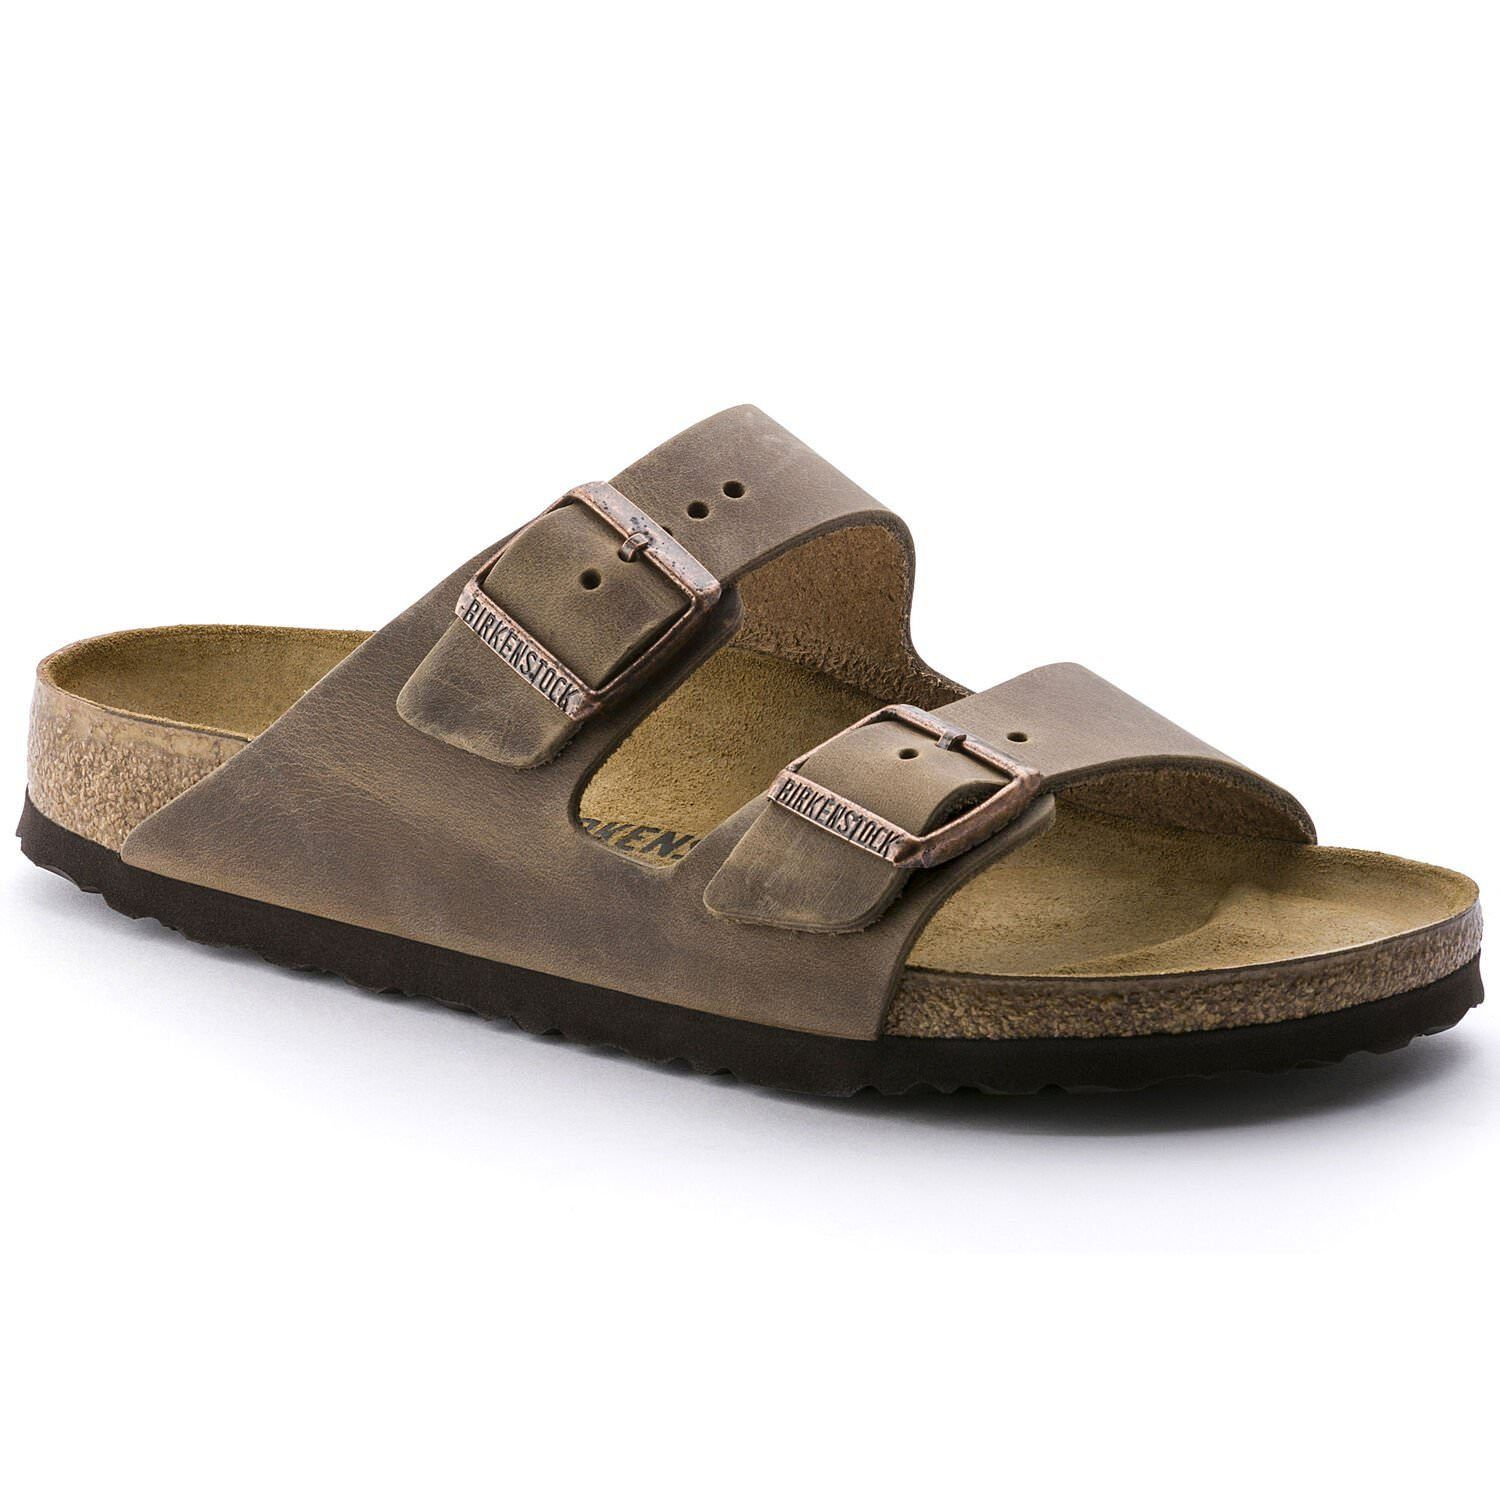 Birkenstock Classic, Arizona, Narrow Fit, Natural Leather, Tobacco Brown Sandals Birkenstock Classic